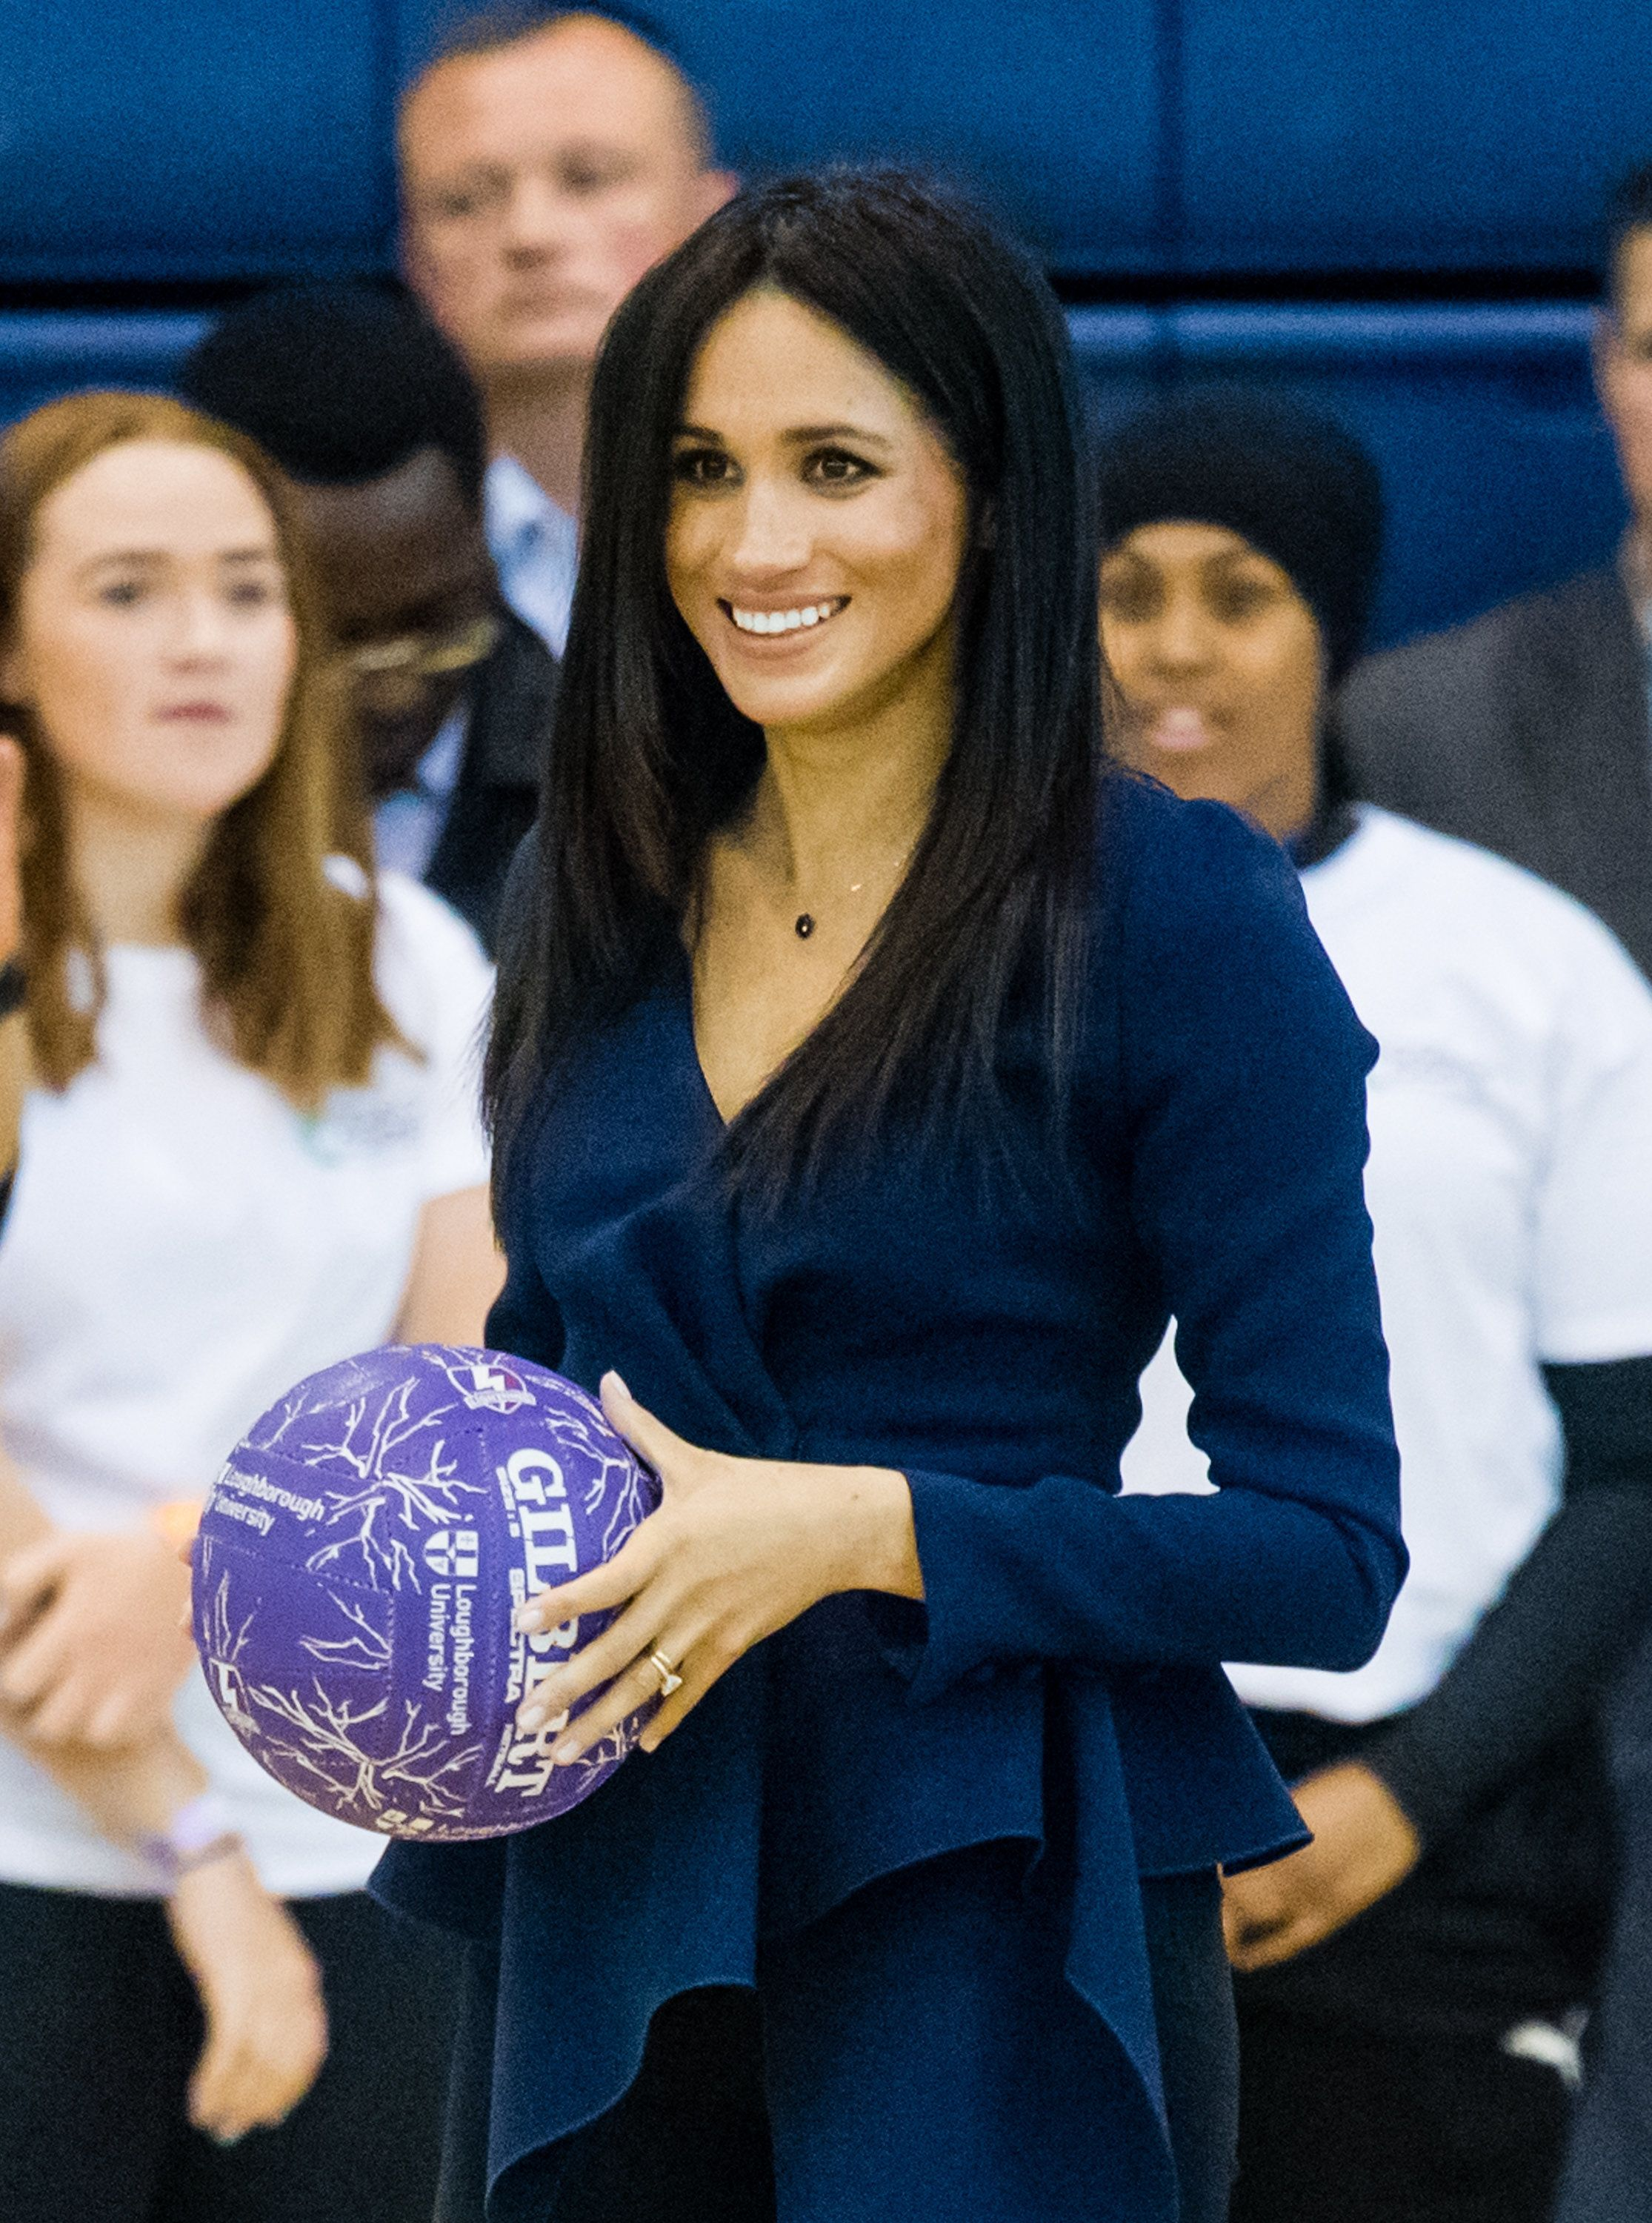 LOUGHBOROUGH, ENGLAND - SEPTEMBER 24:  Meghan, Duchess of Sussex attends the Coach Core Awards held at Loughborough University on September 24, 2018 in Loughborough, England.  (Photo by Samir Hussein/Samir Hussein/WireImage)